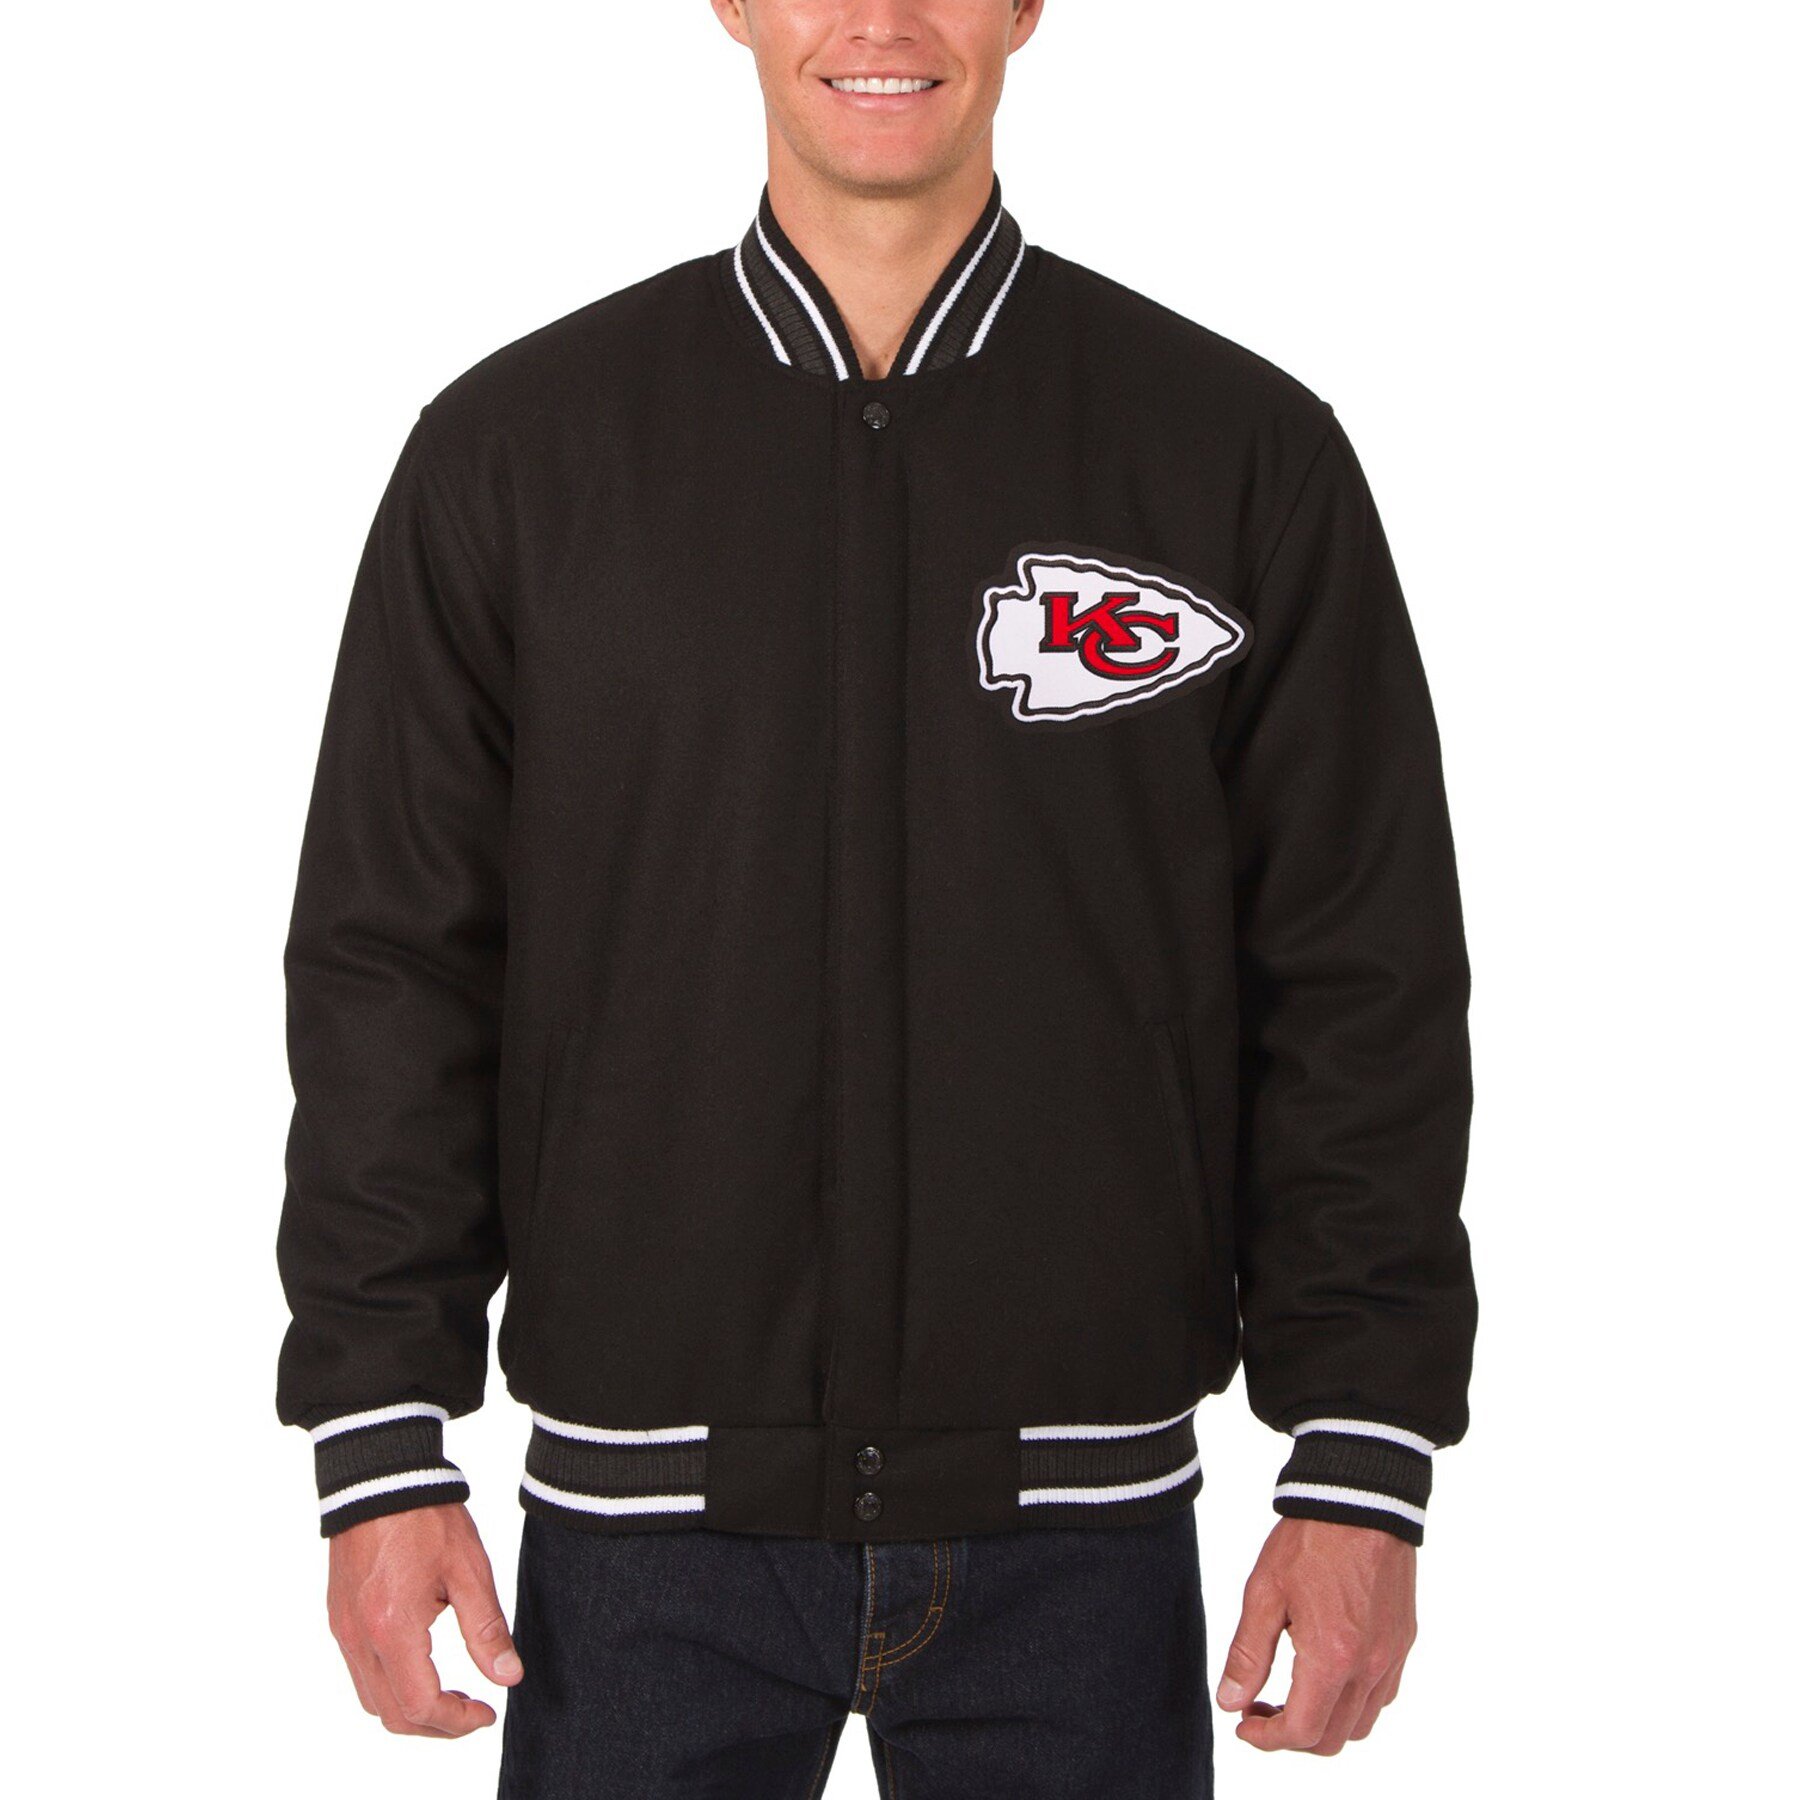 Kansas City Chiefs JH Design Wool Reversible Jacket with Embroidered Logos - Black